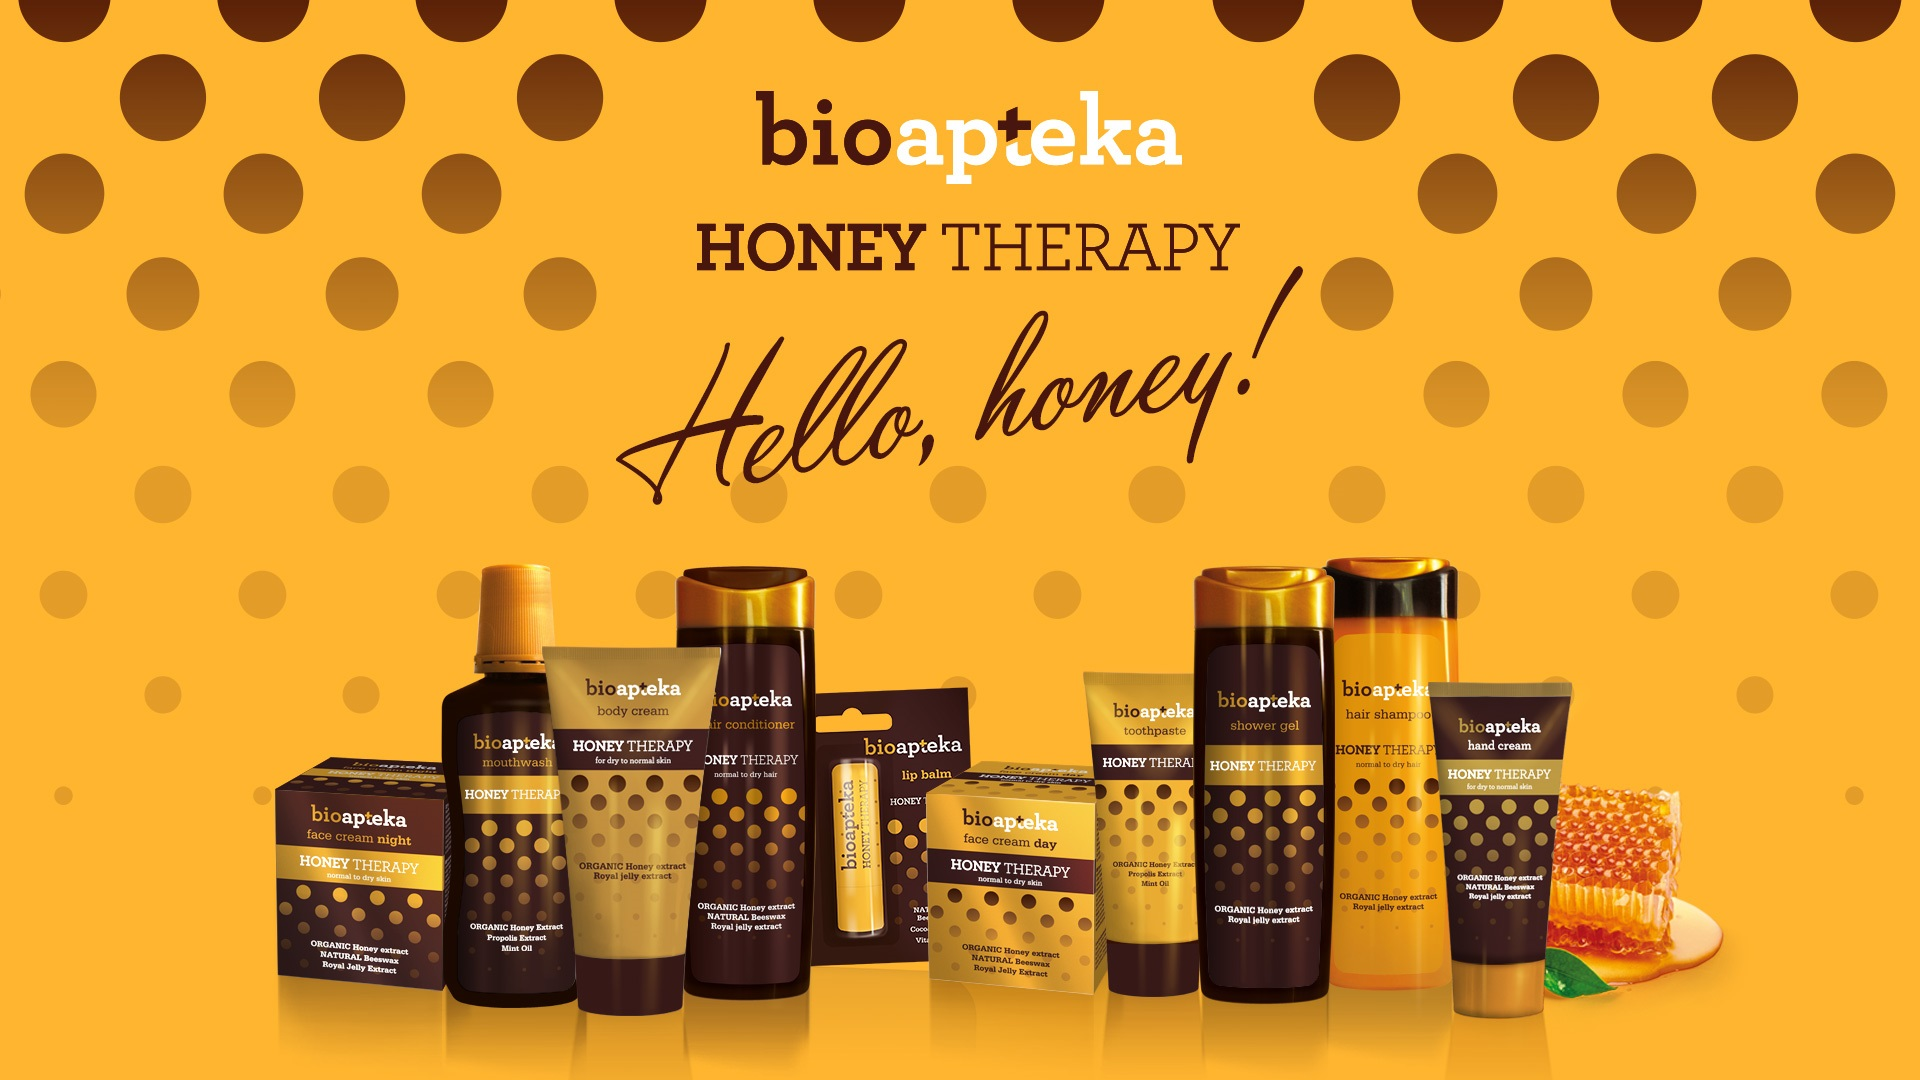 181017_BioApteka_Honey_Therapy_Launch_Products